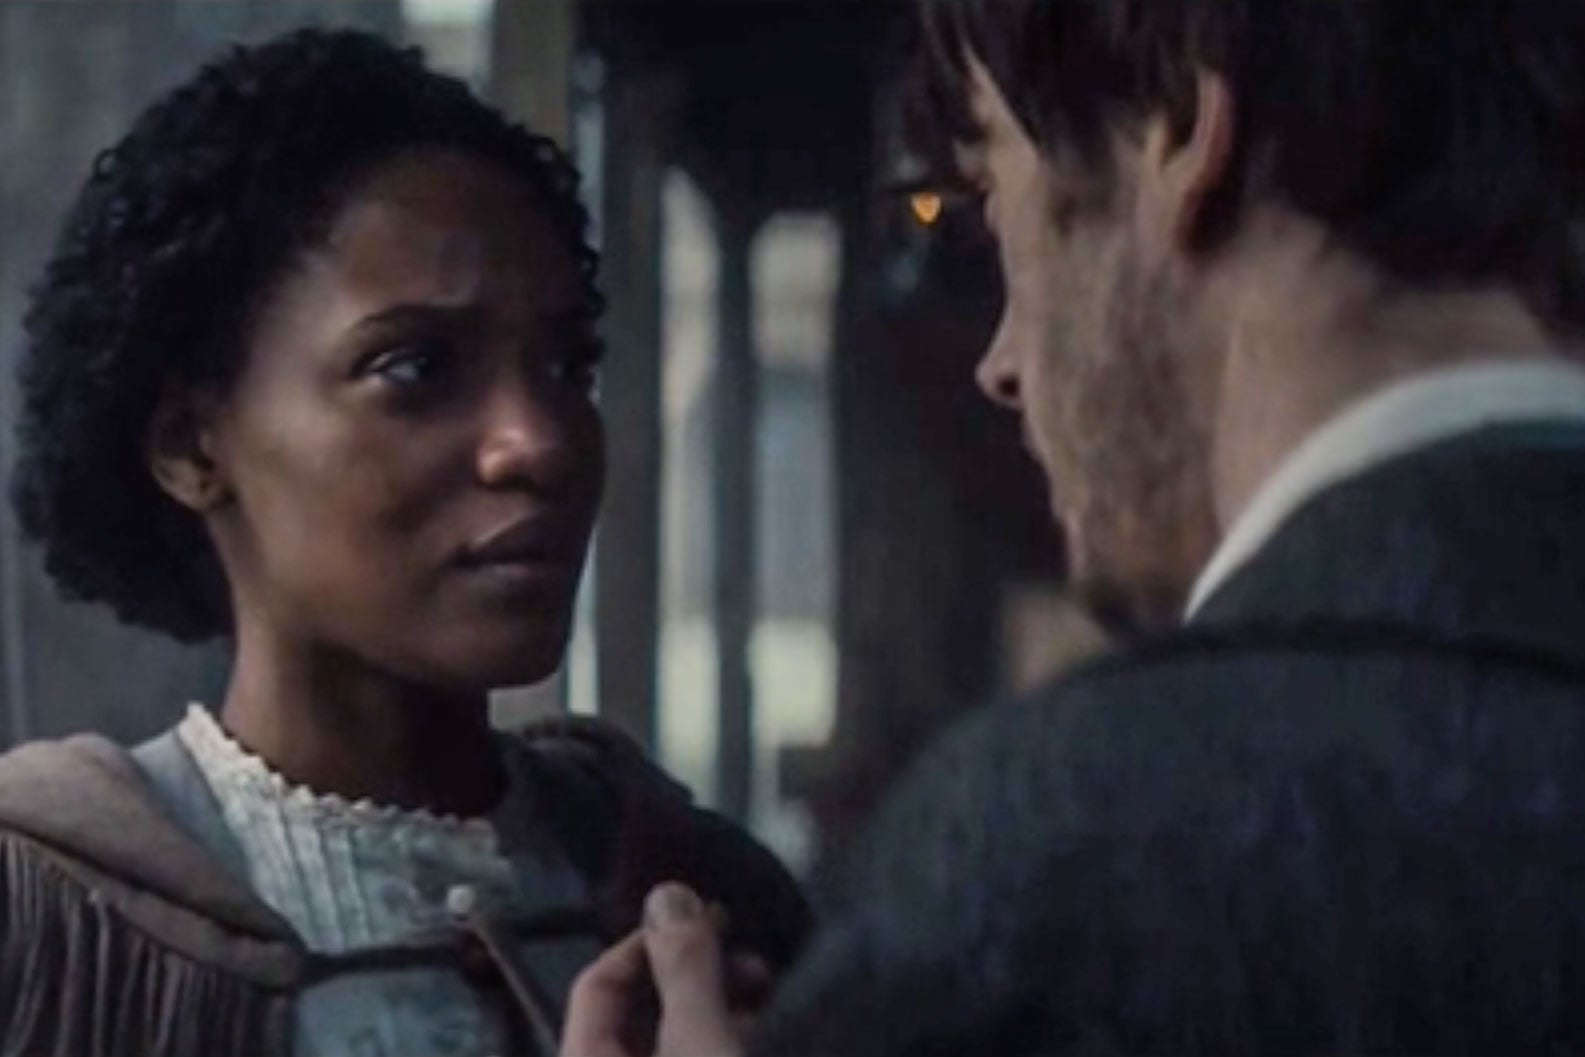 In a 19th-century setting, a white man talks to a black woman who is wearing a cloak and looks worried.